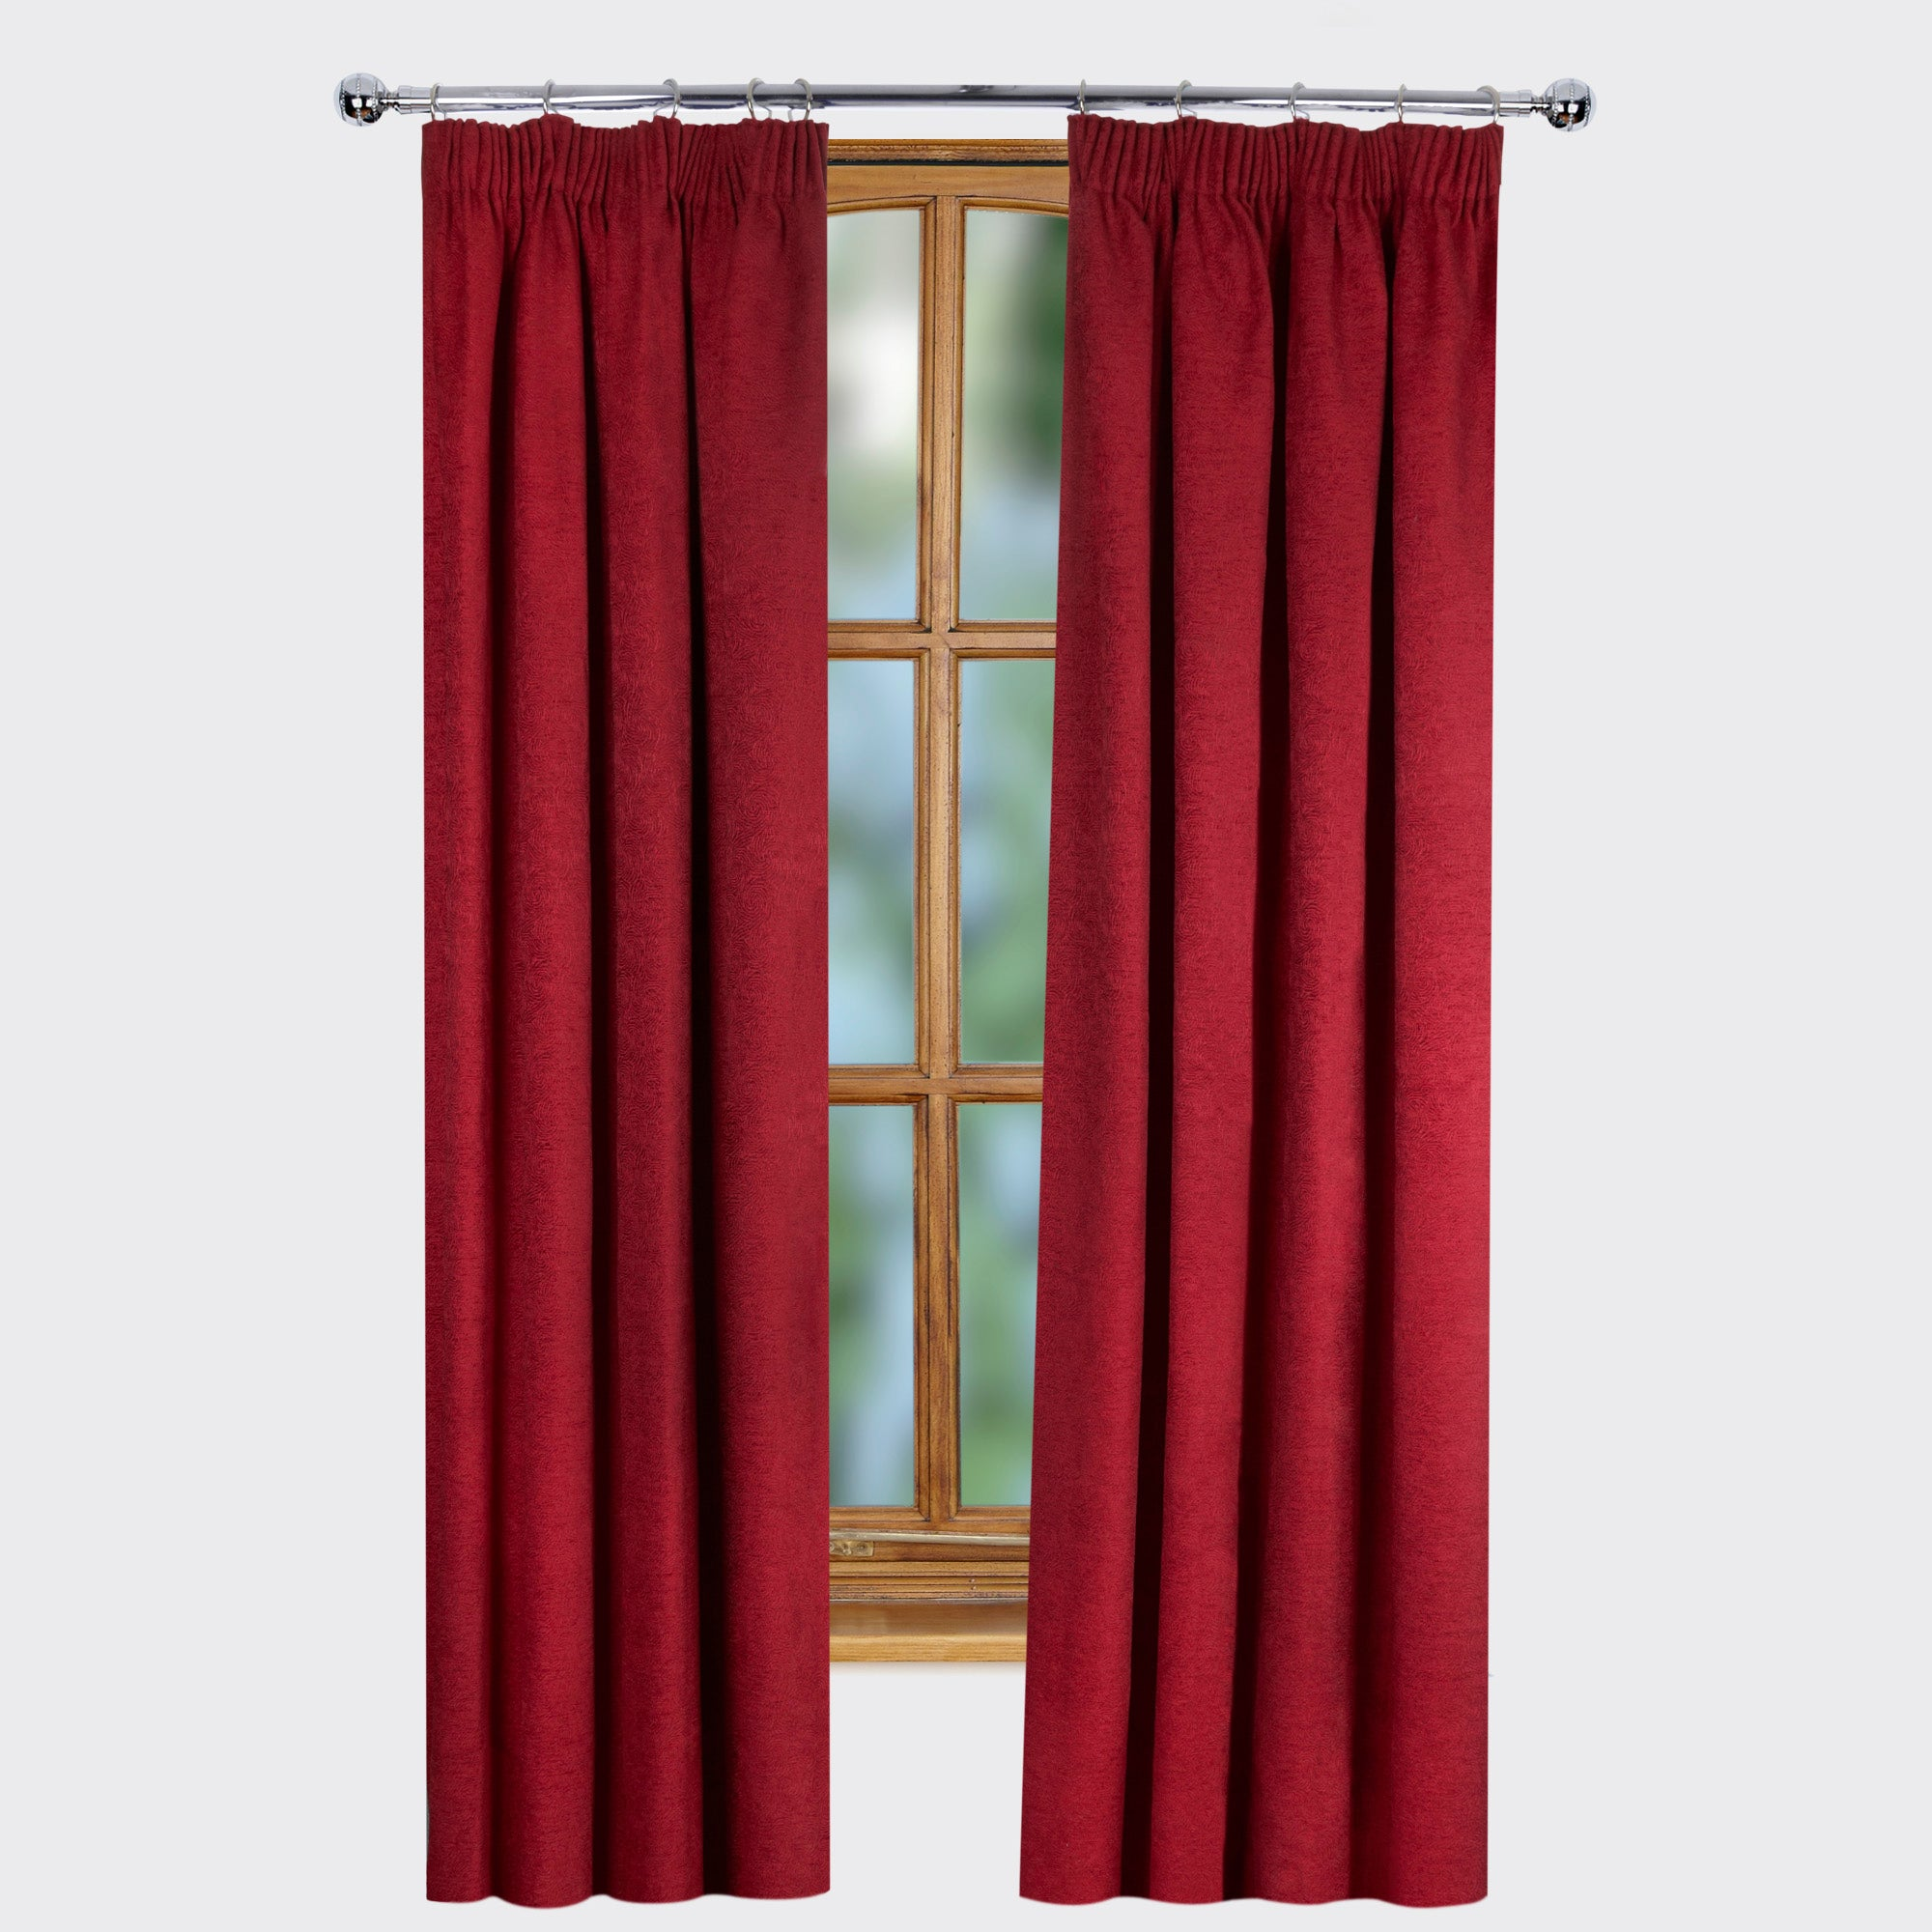 Red Ontario Thermal Pencil Pleat Curtains